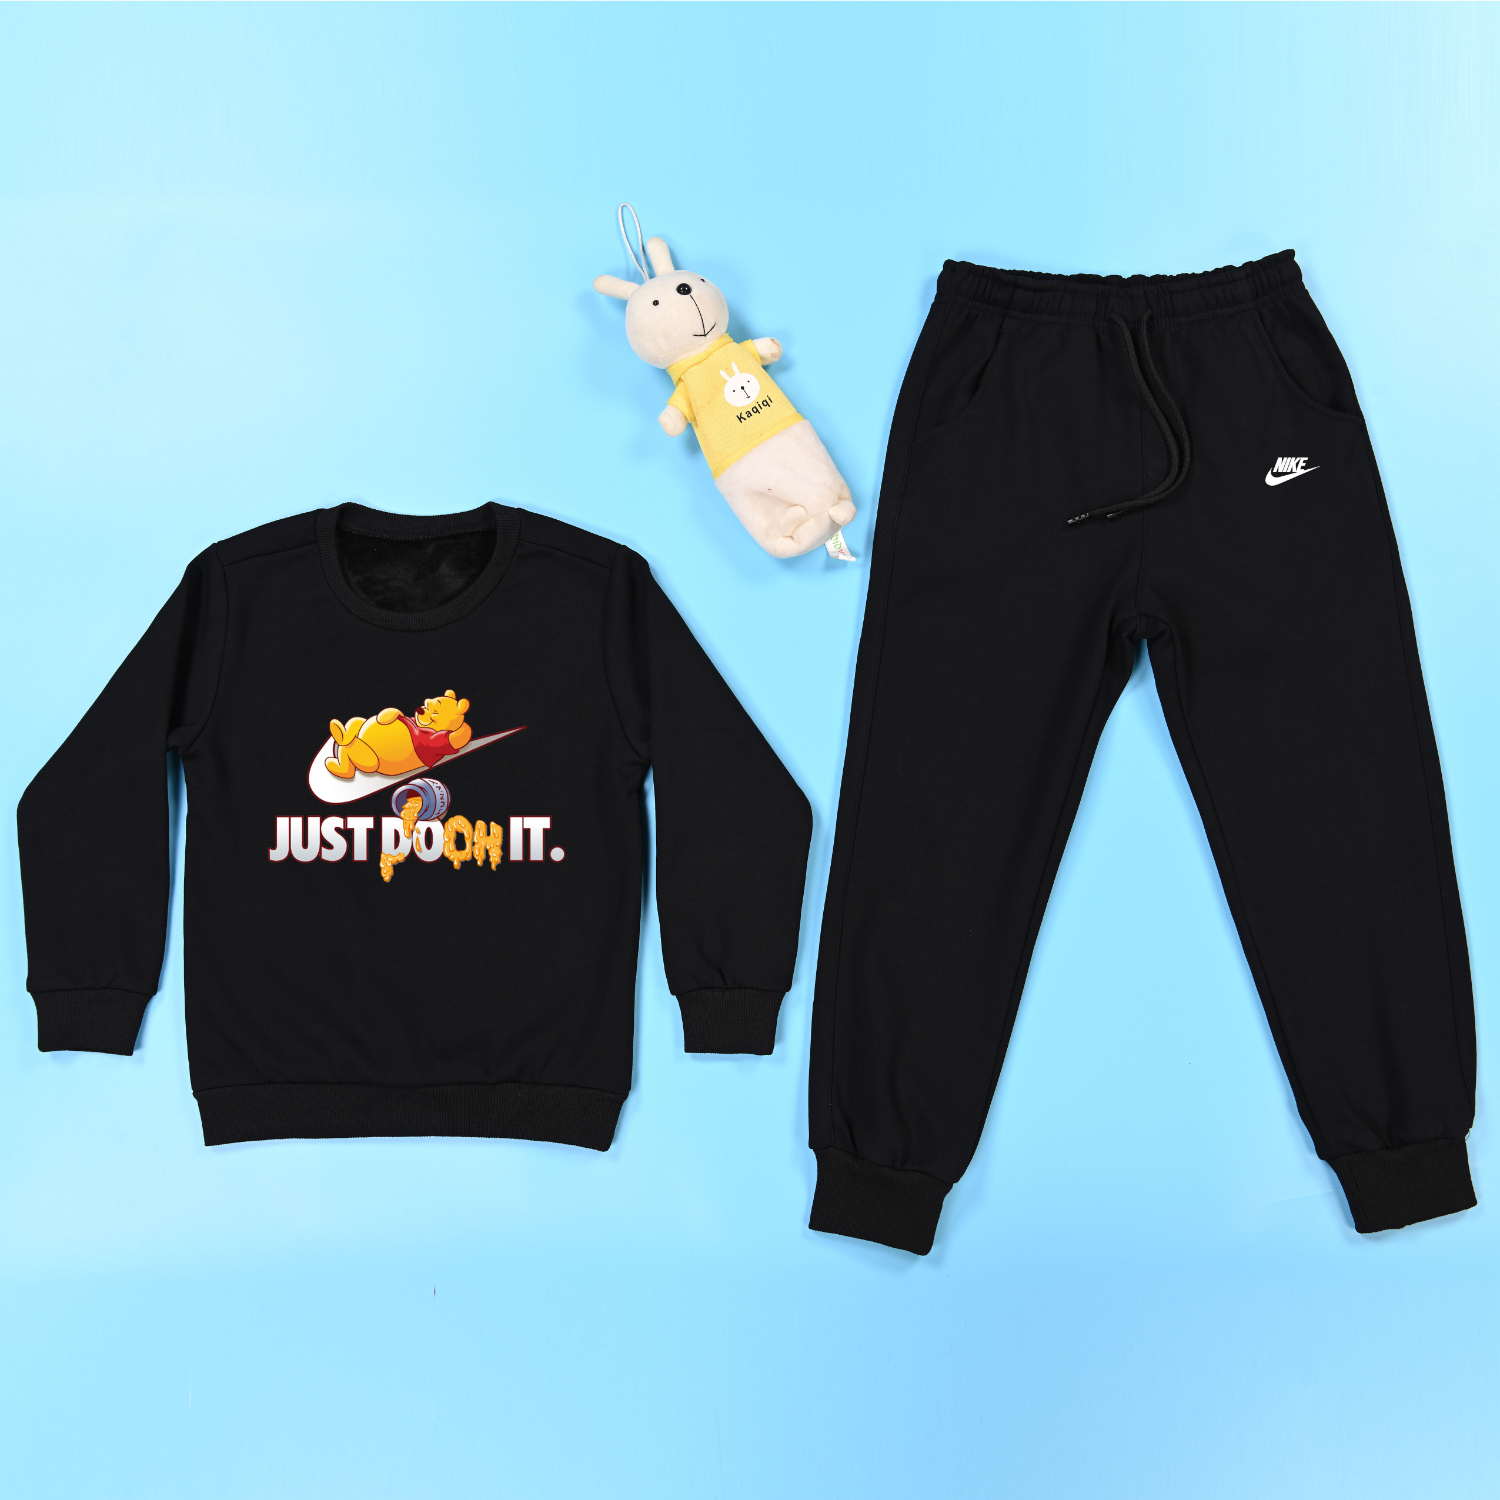 Nike Fleece Children Sports Clothing Sets Kids Cartoon Pooh Warm Tracksuits Infant Outfit Kids 2pcs/Set